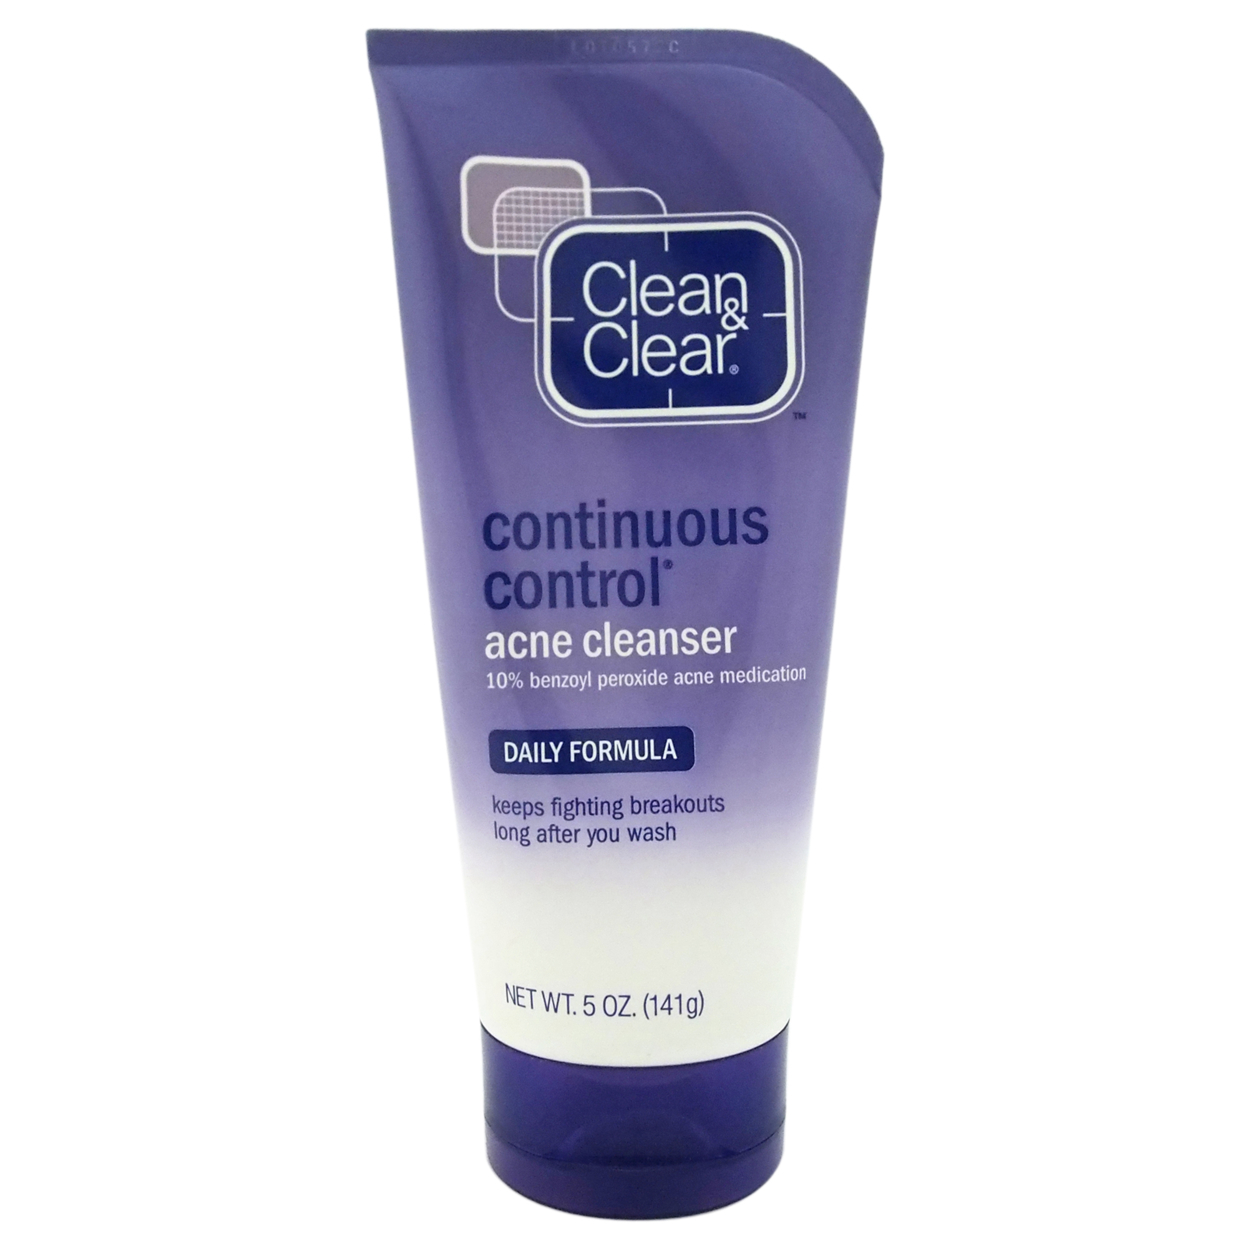 Daily Formula Continuous Control Acne Cleanser by Clean & Clear for Unisex - 5 oz Cleanser 5898e199c98fc450900ec82e